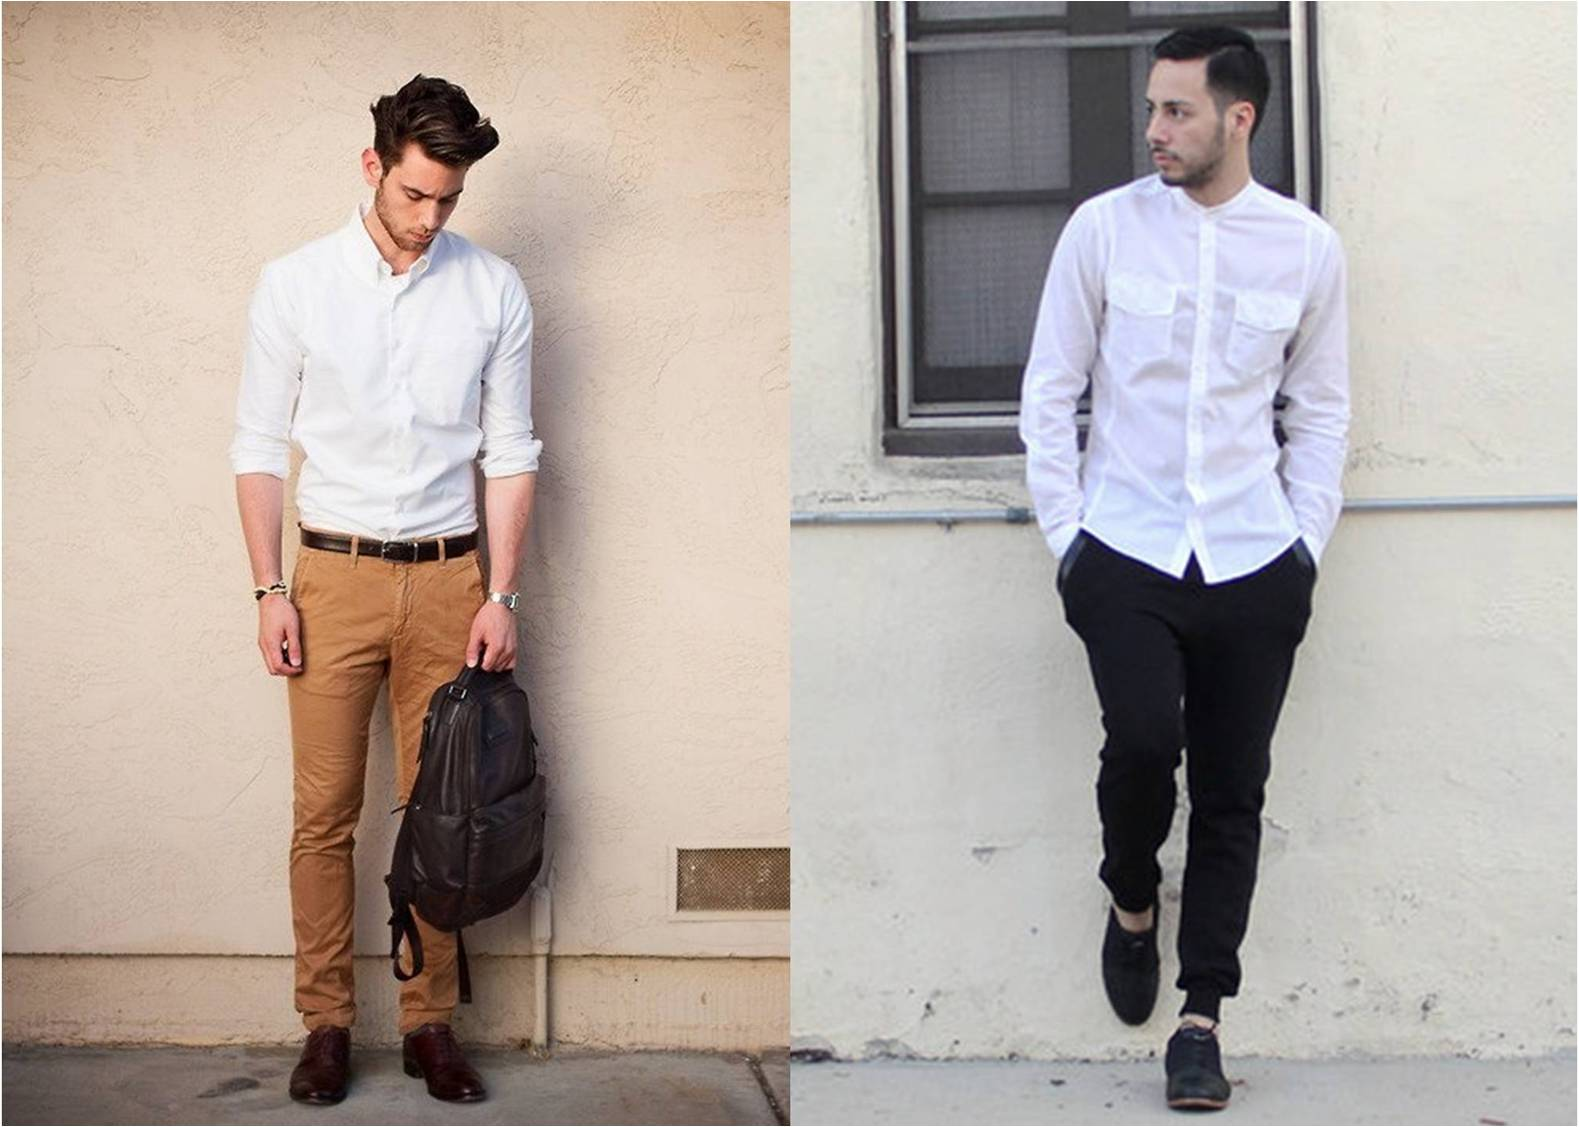 The Most Important Outfit You Should Have - Men's White Dress Shirts